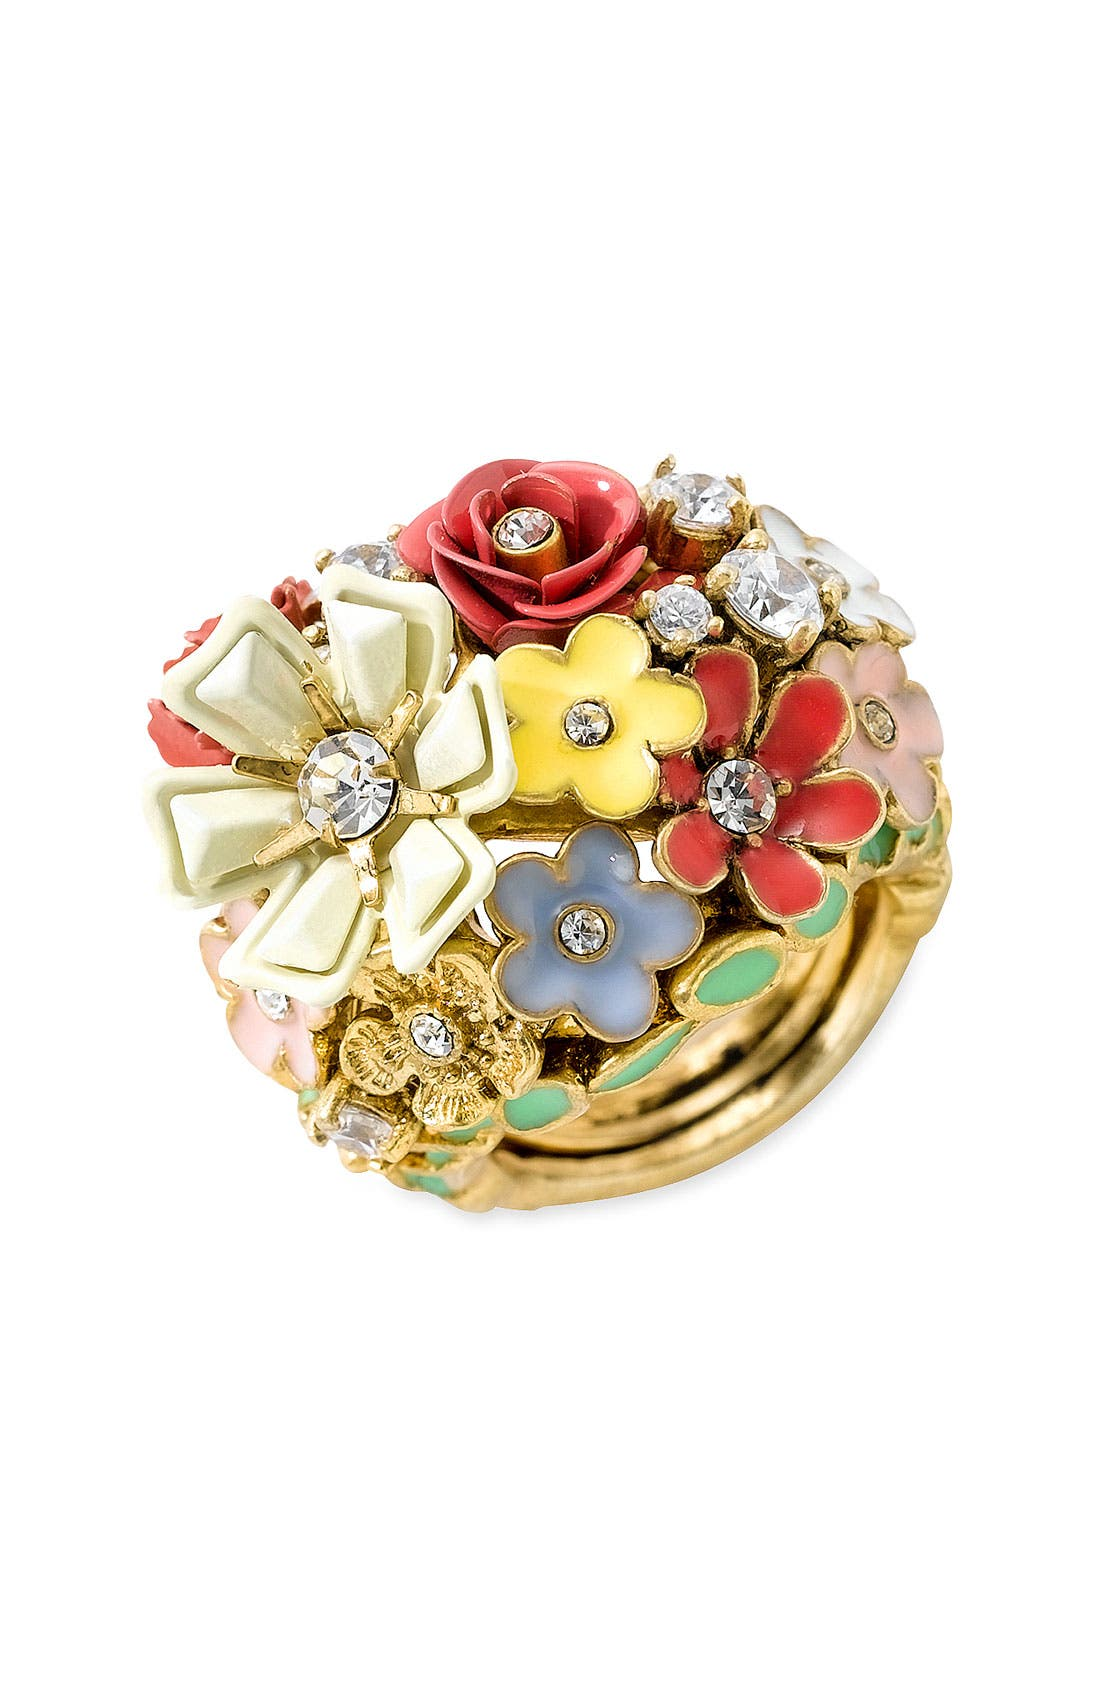 Main Image - Juicy Couture 'Flower Punk' Ring